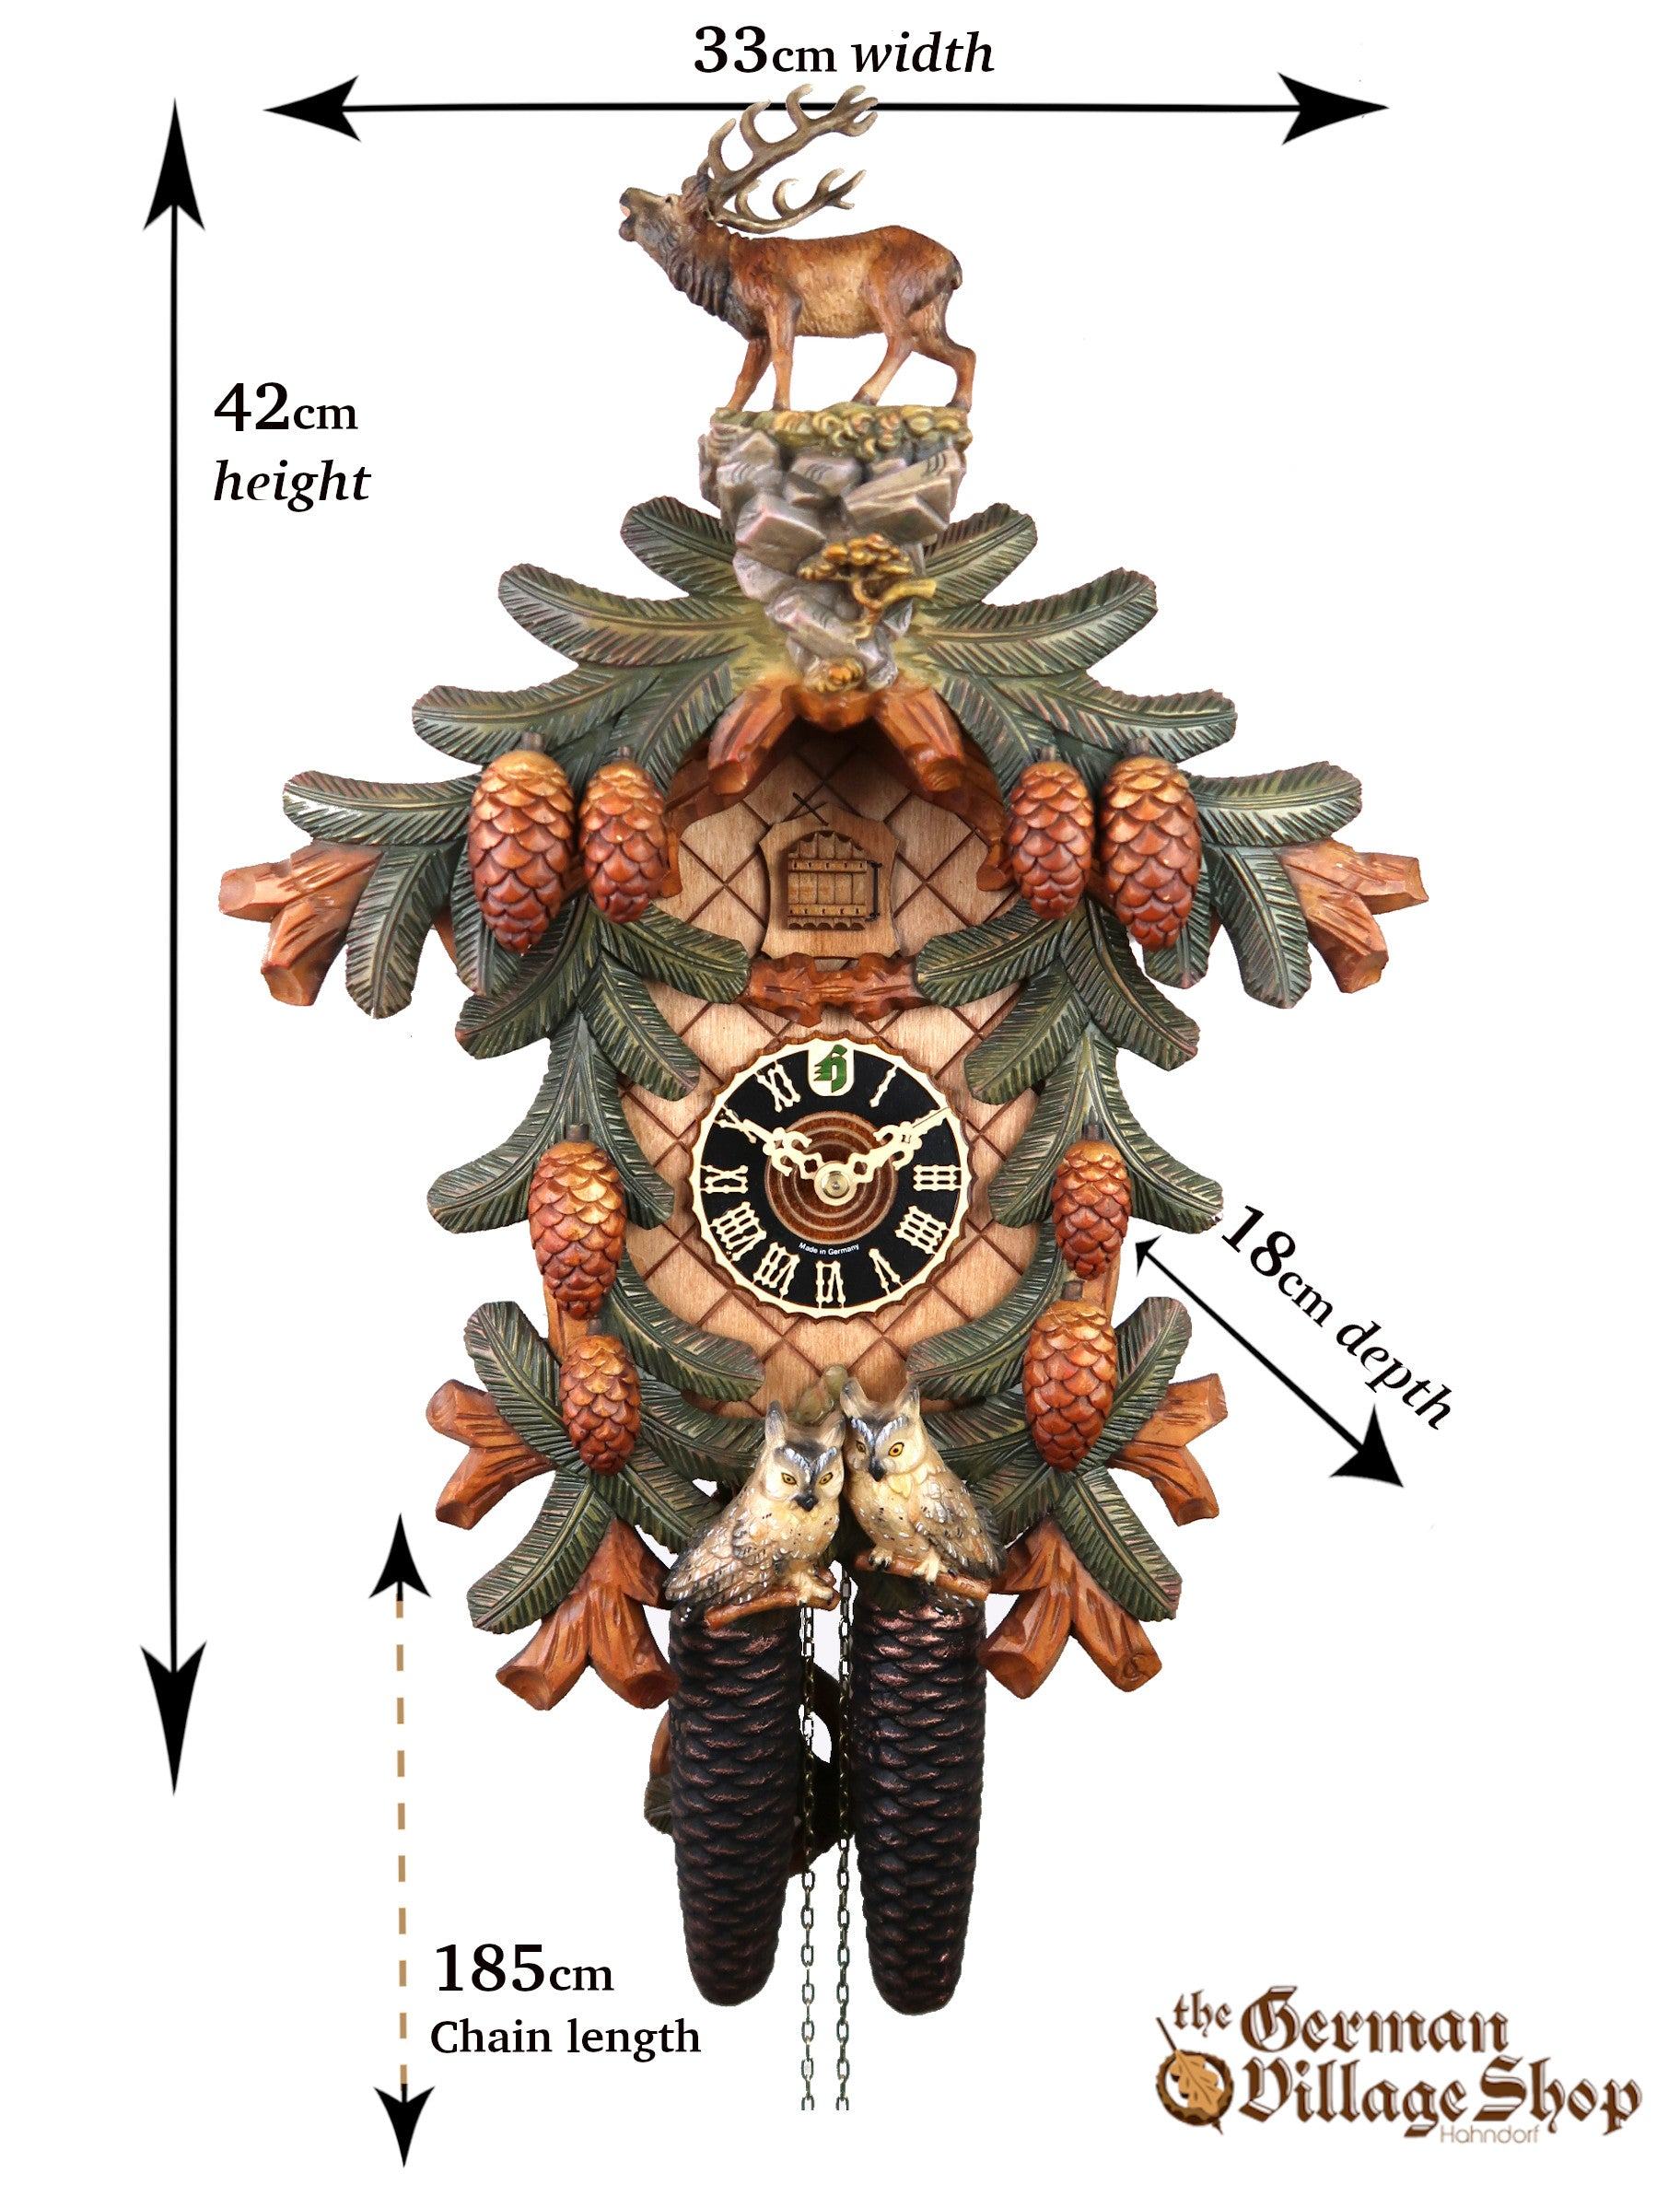 Size of a German Cuckoo Clock imported and for sale in Australia